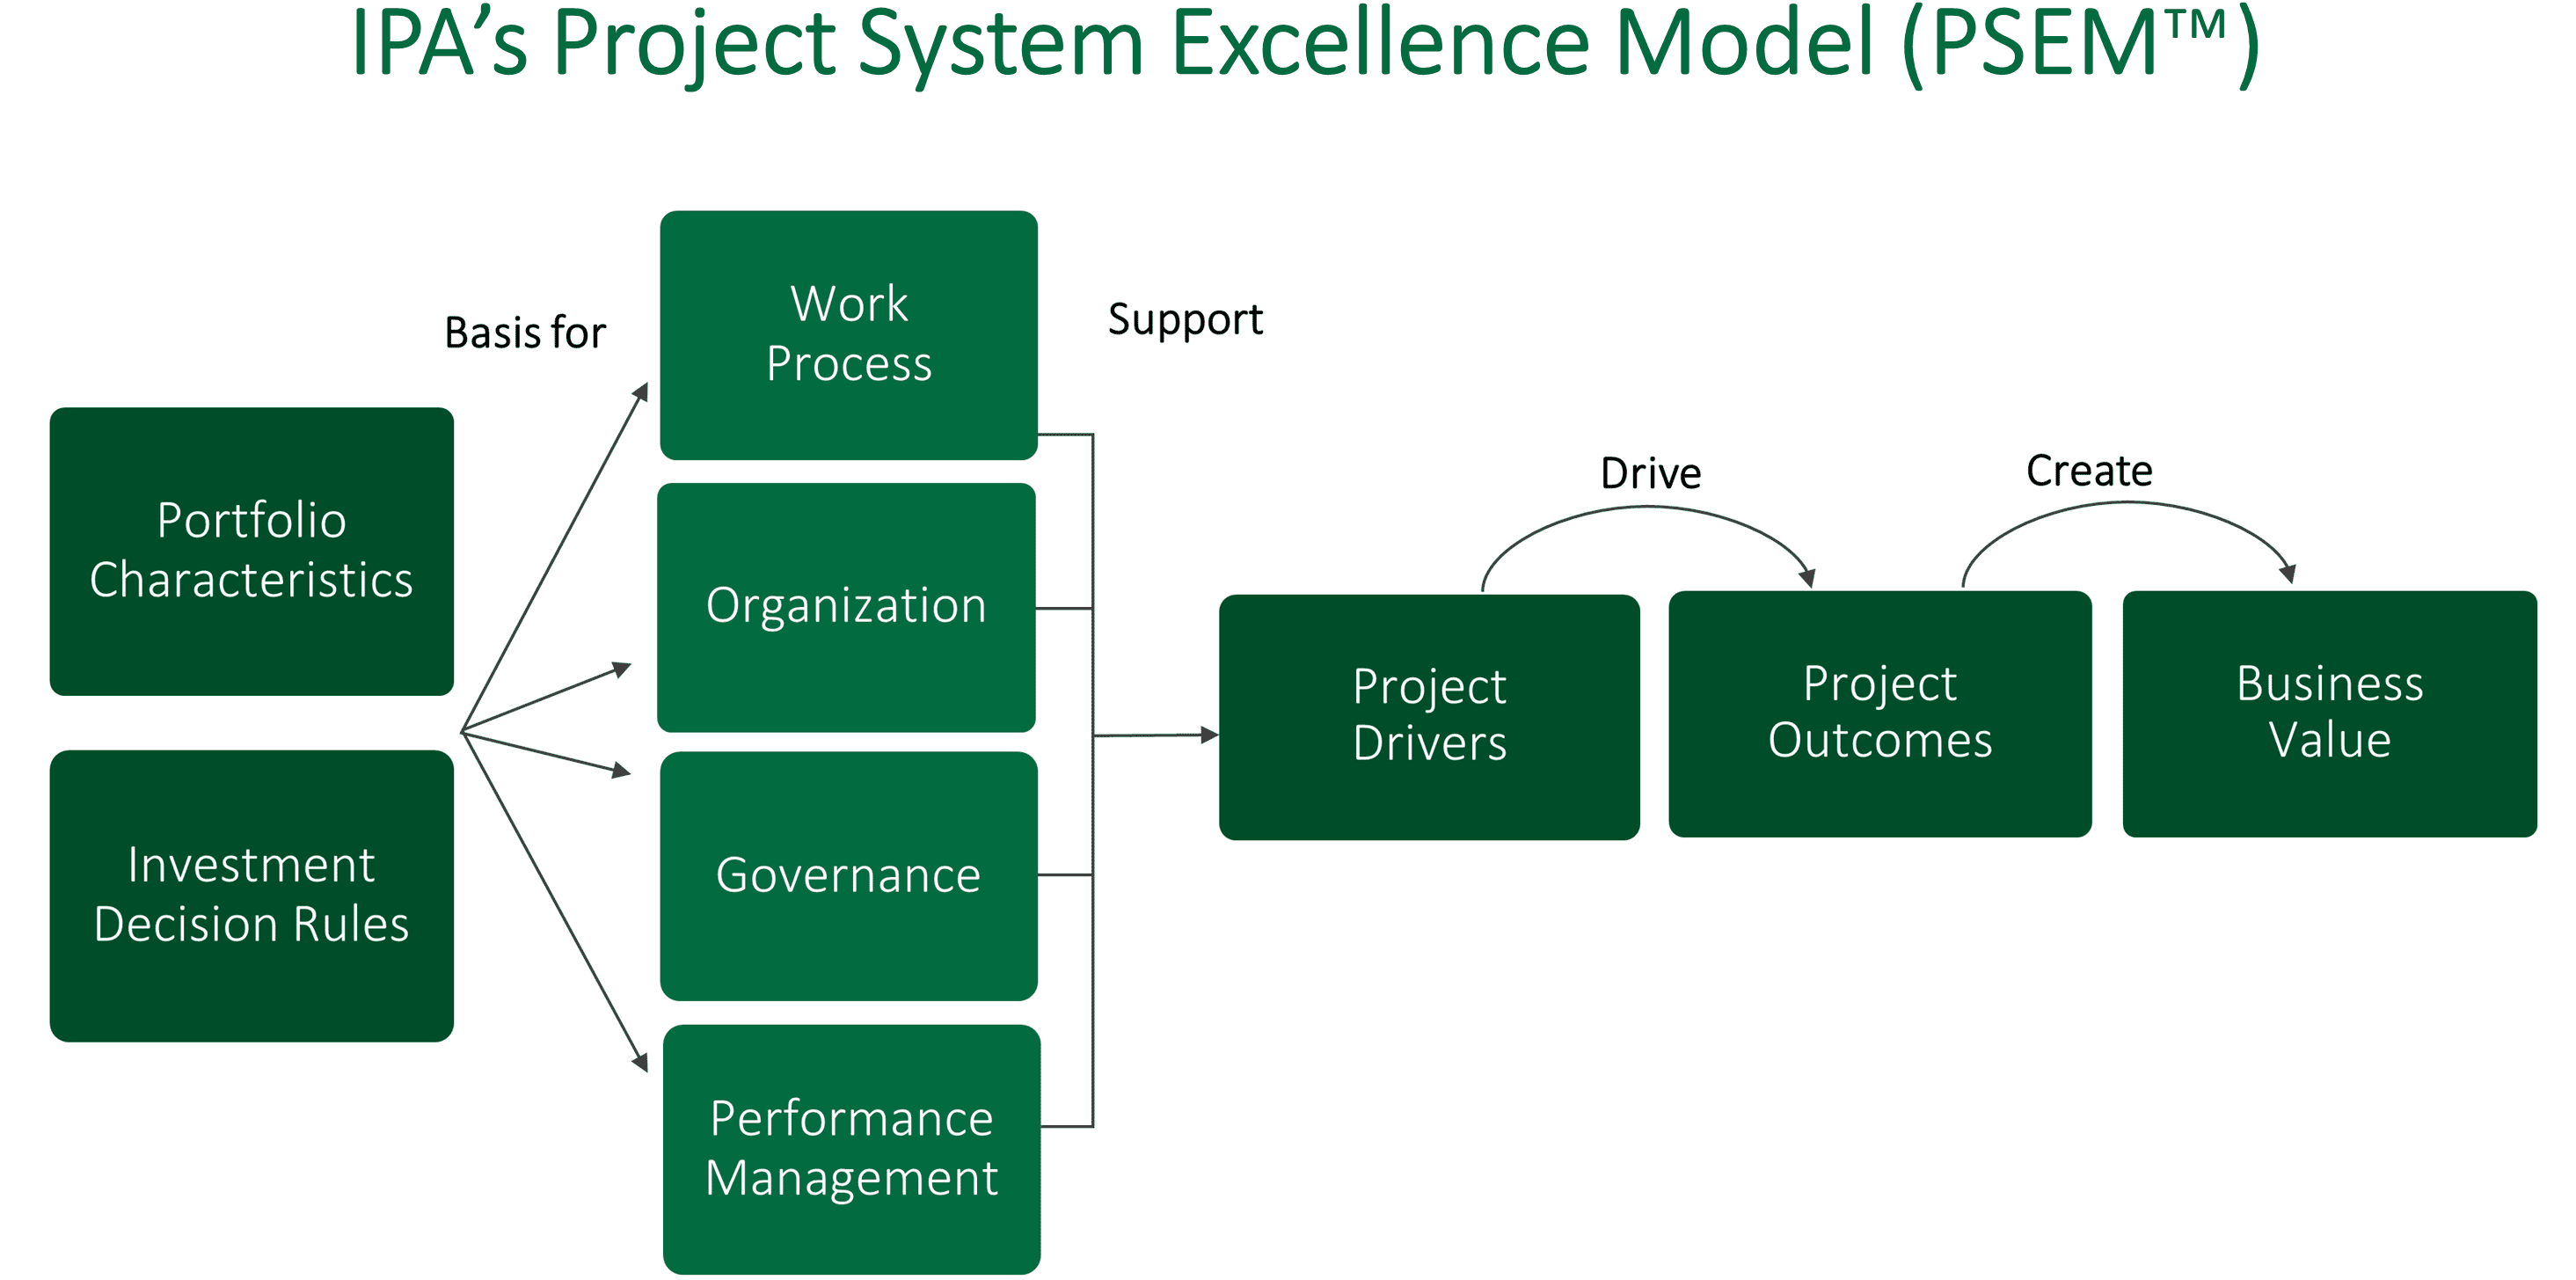 Graphic illustration of IPA's Project System Excellence Model (PSEM).